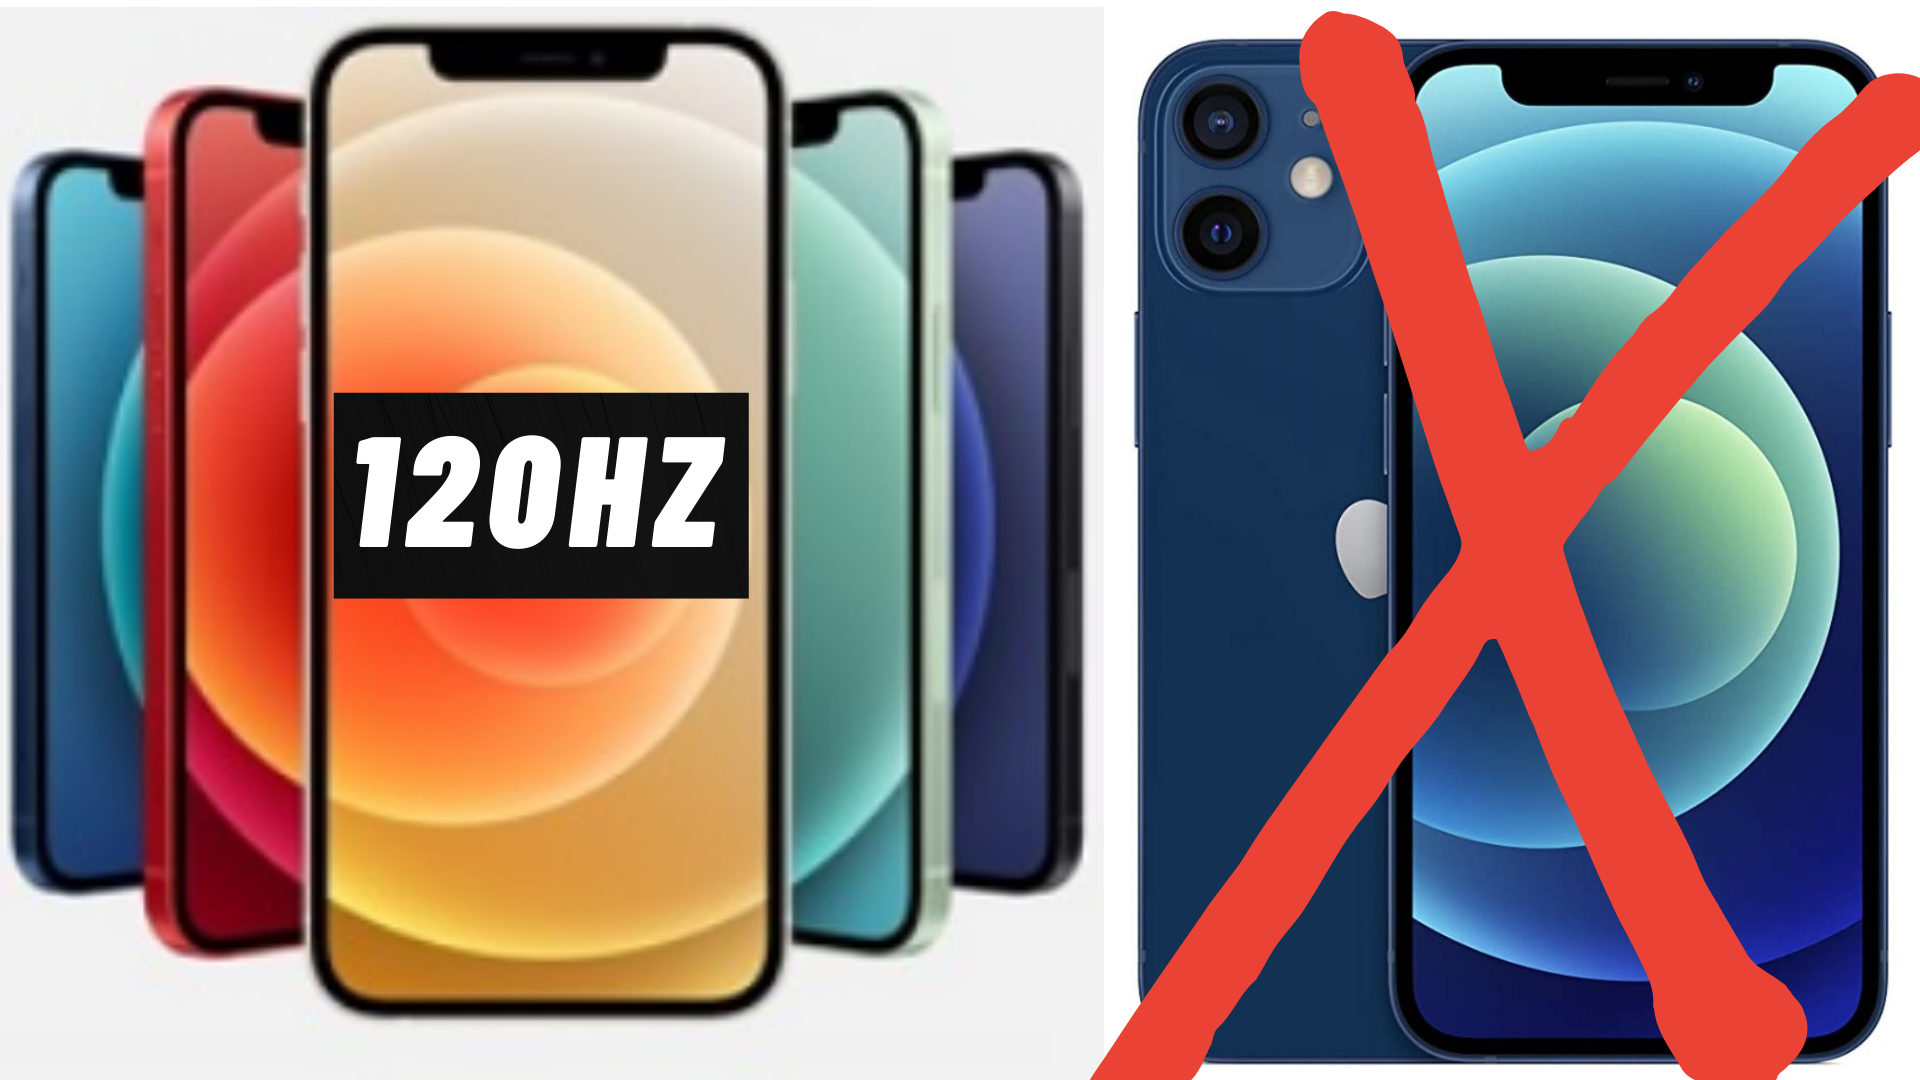 Apple iPhone 14 to feature 120HZ Display & Mini series to be discontinued, says report